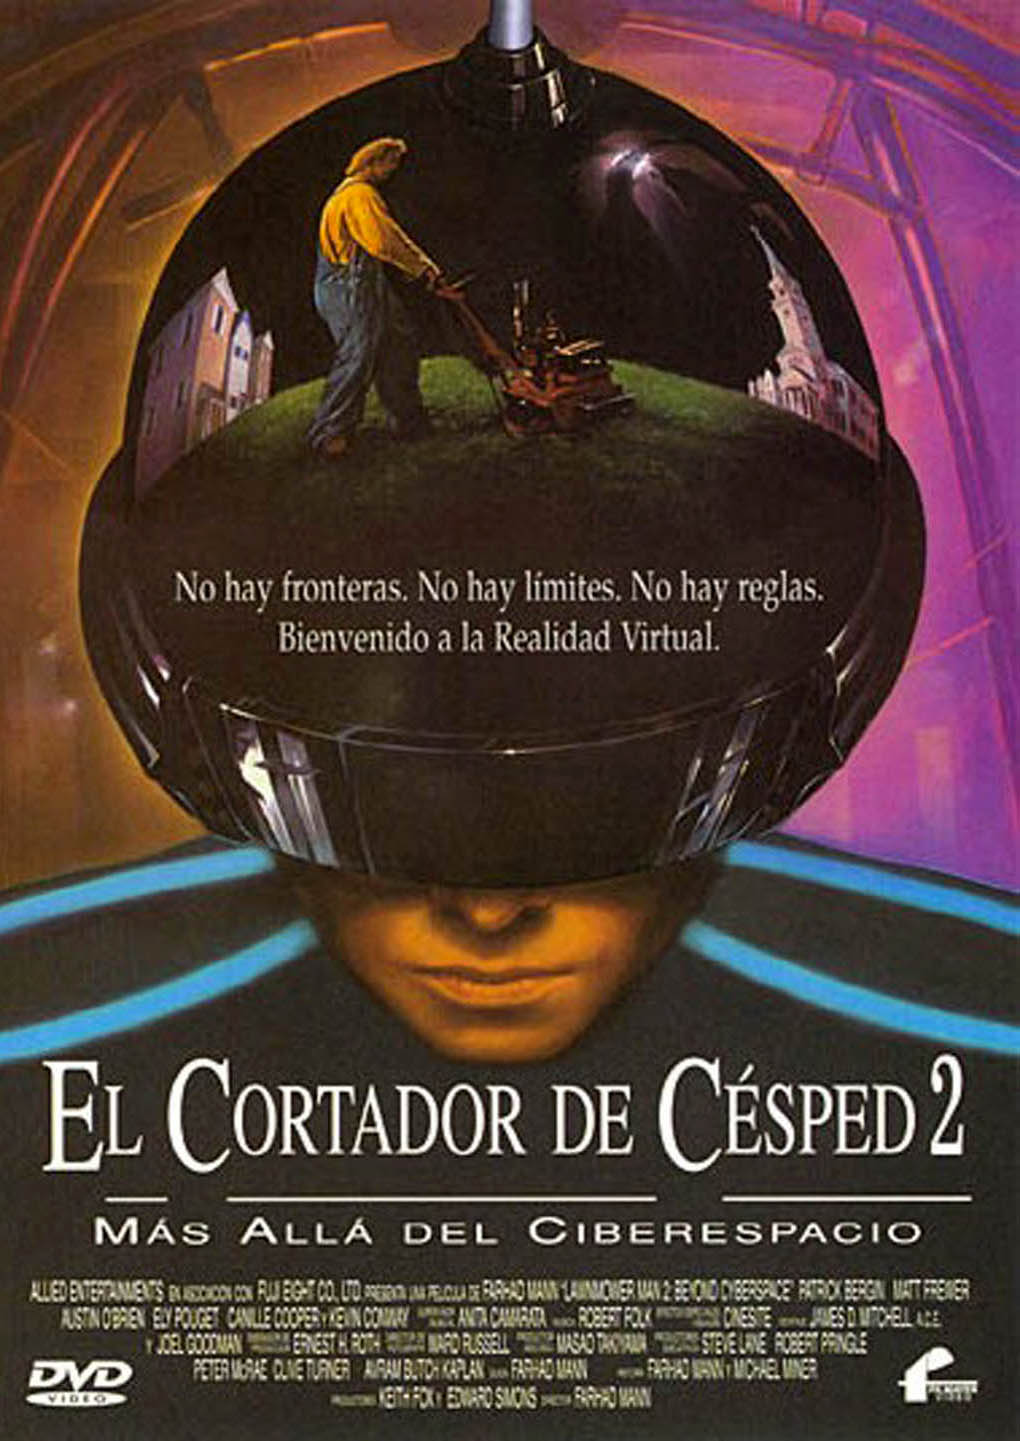 El cortador de césped, Stephen King, Pierce Brosnan, Jeff Fahey, Austin O'Brien